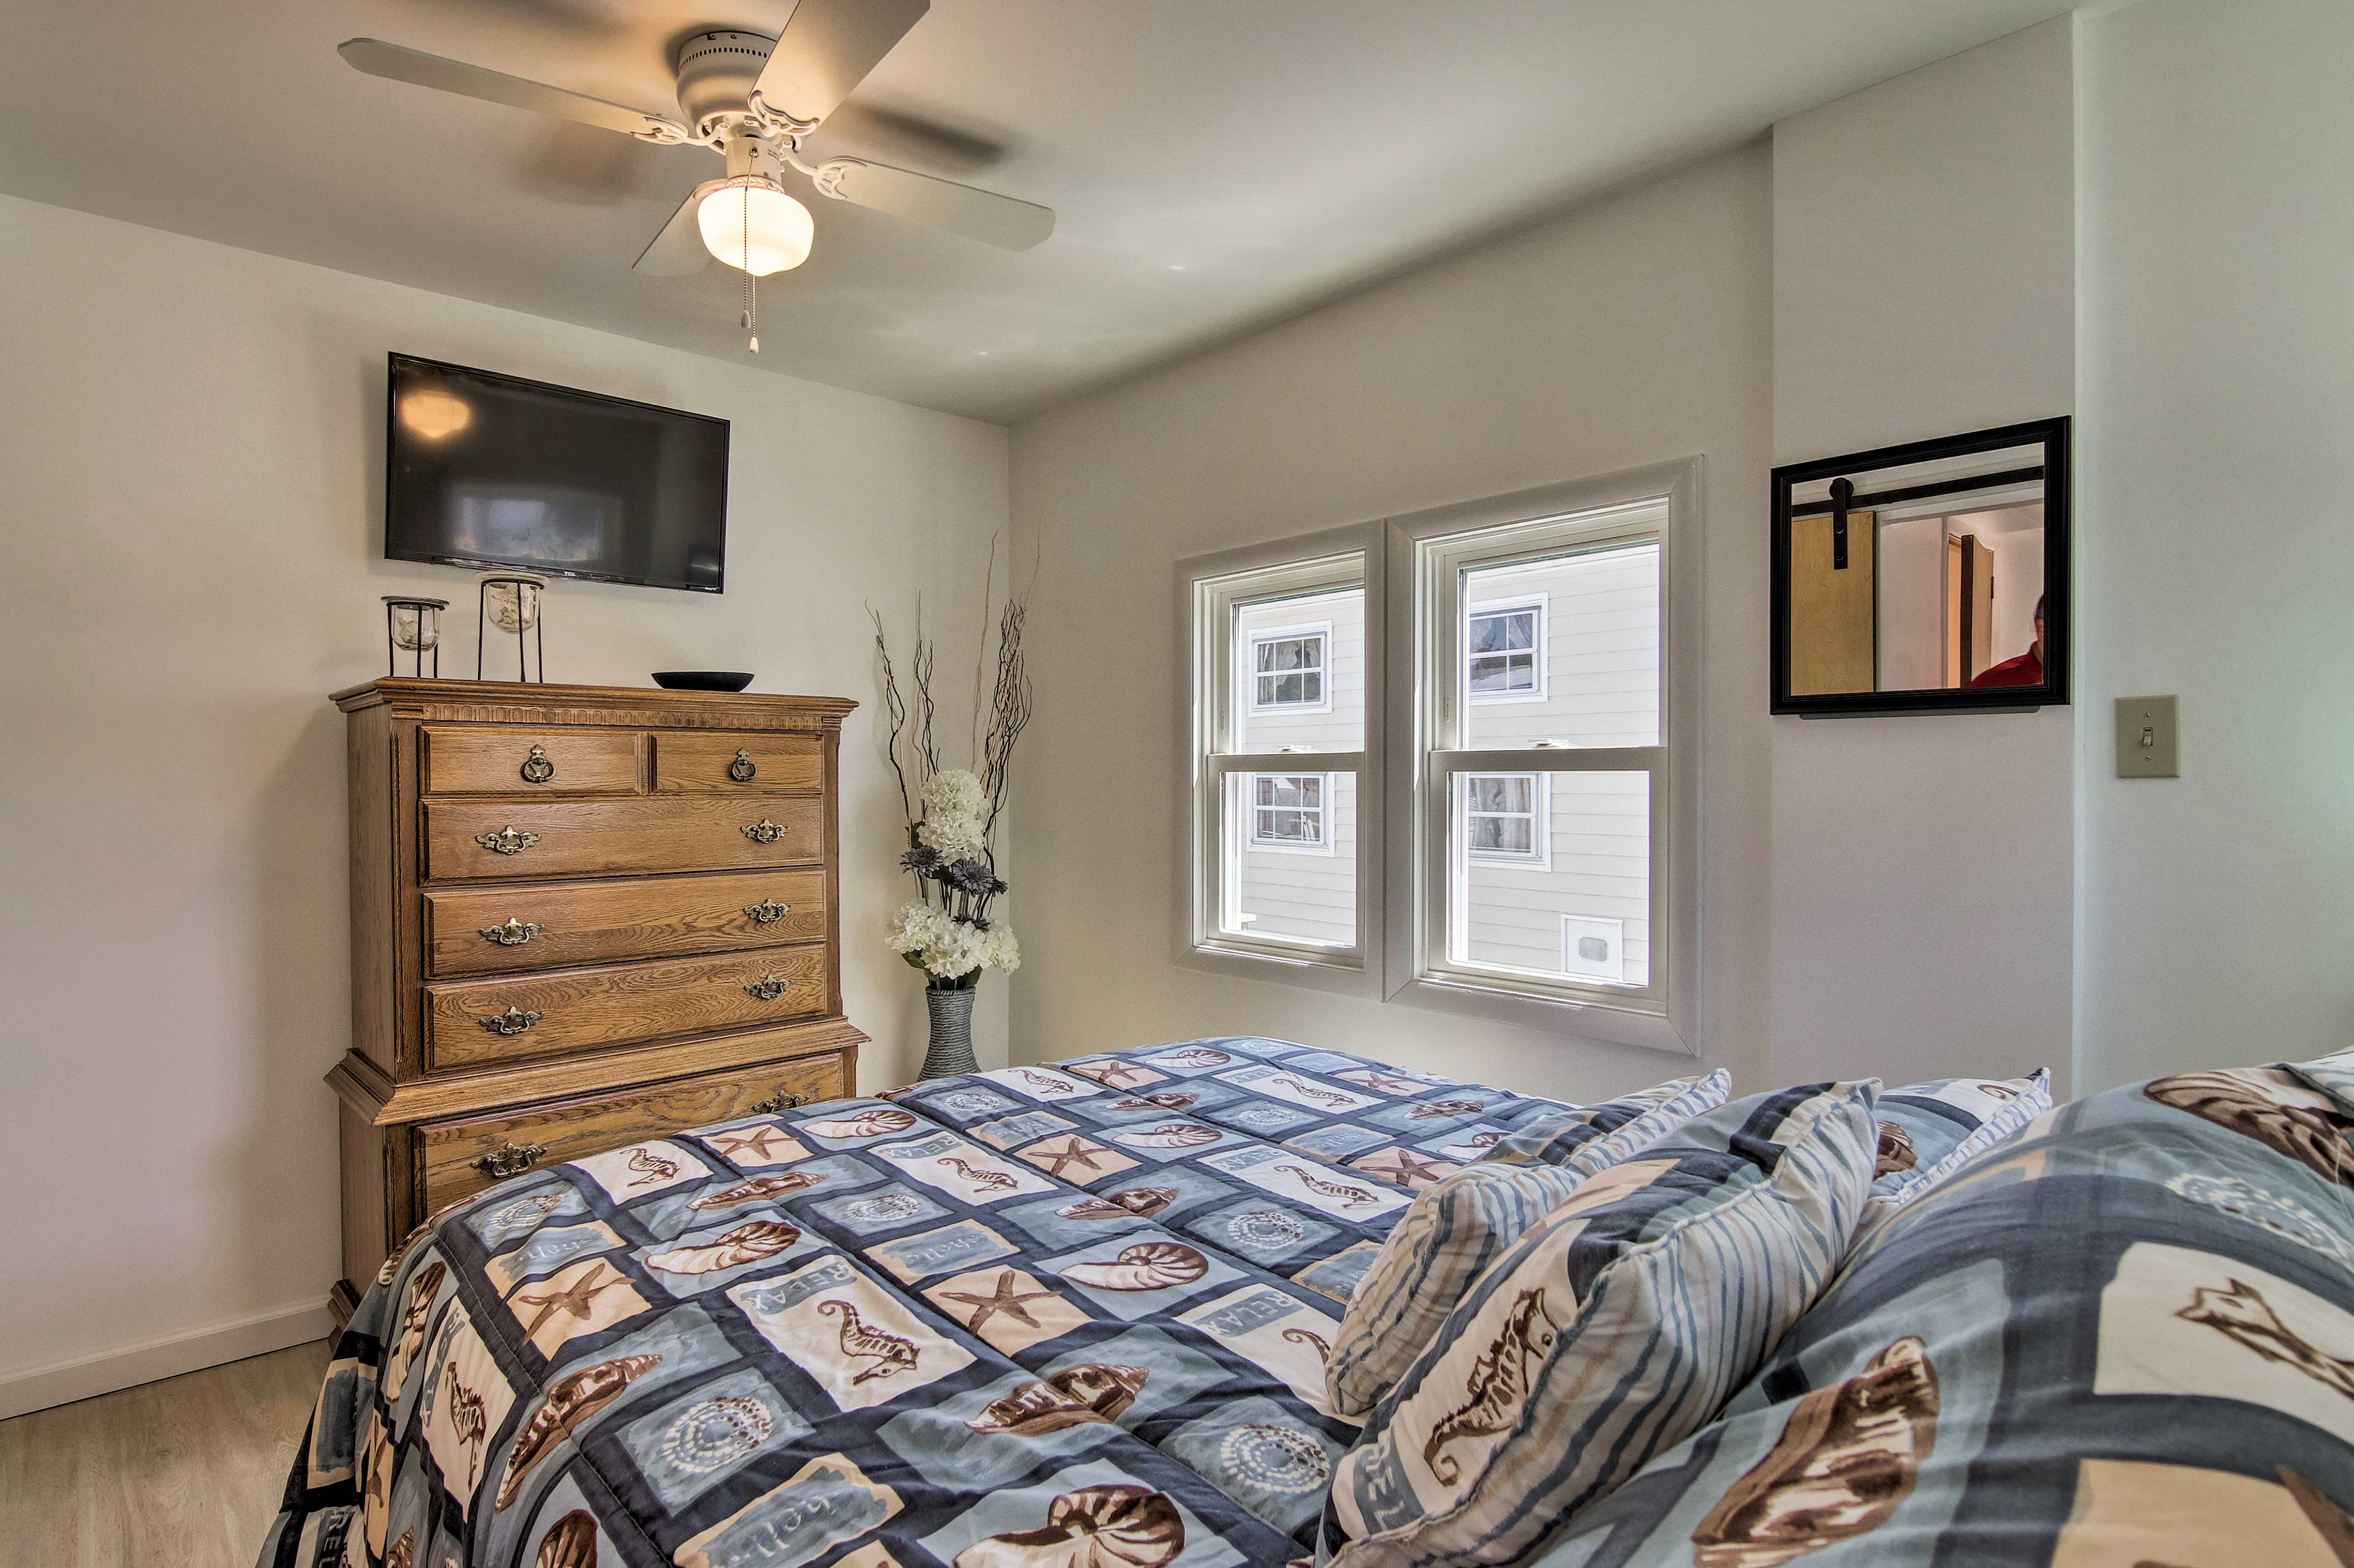 The first bedroom boasts a queen bed and mounted flat-screen TV.